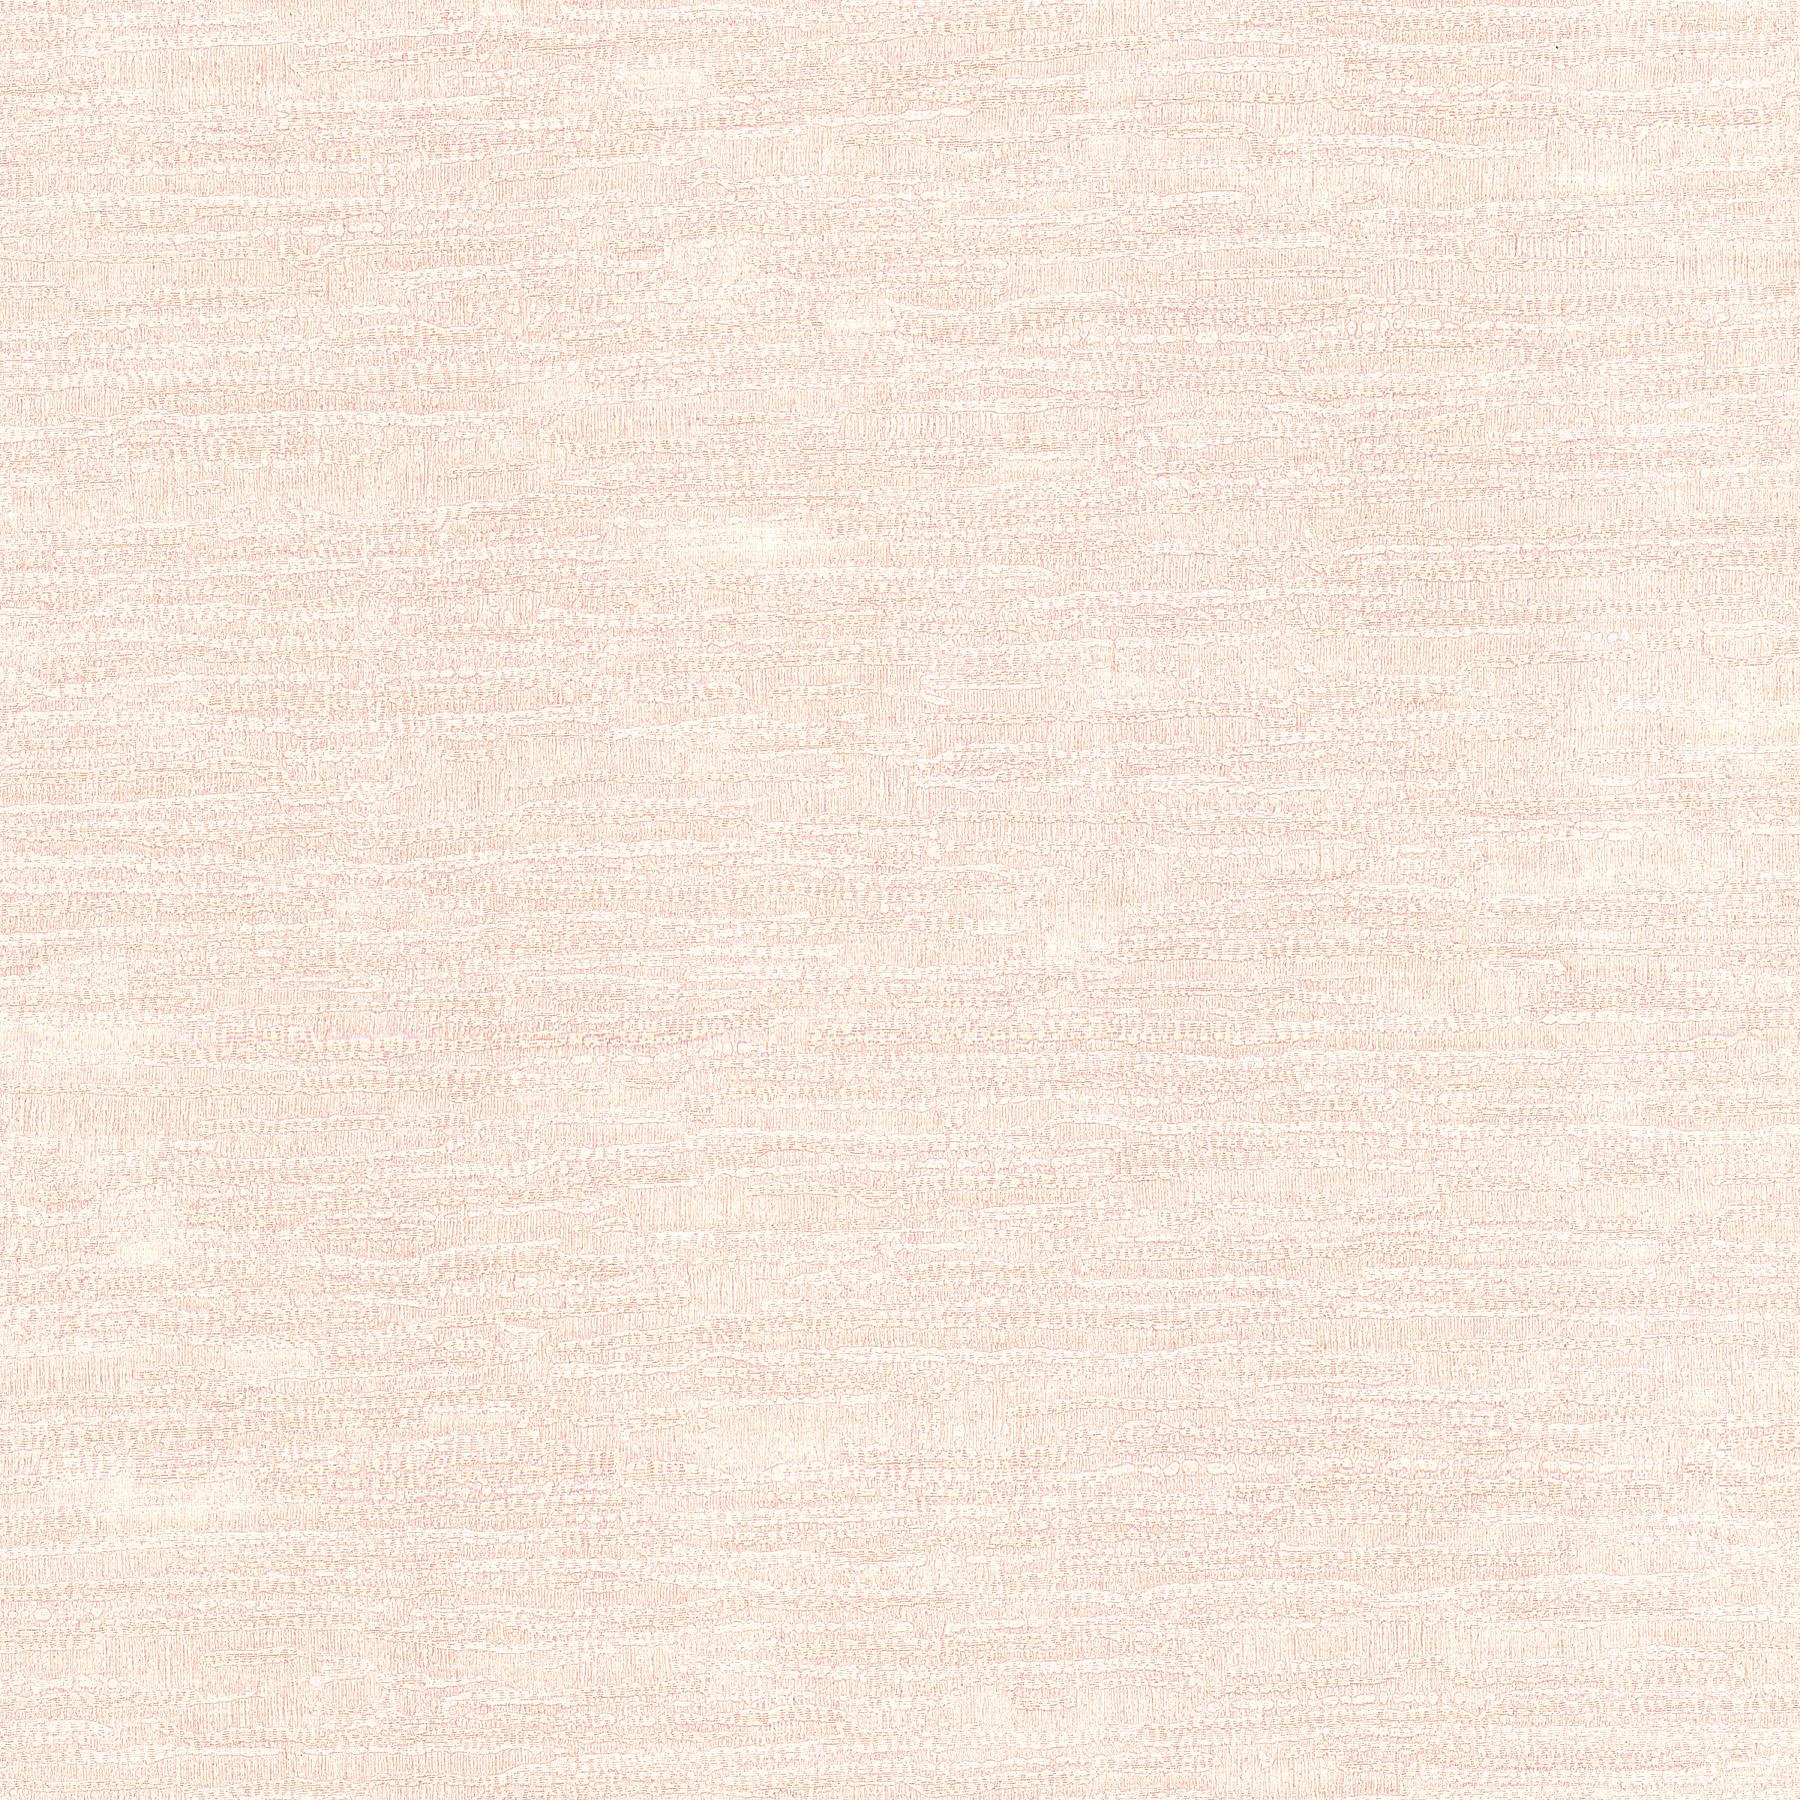 Brewster wallpaper umbria light pink stucco texture for Lightweight stucco